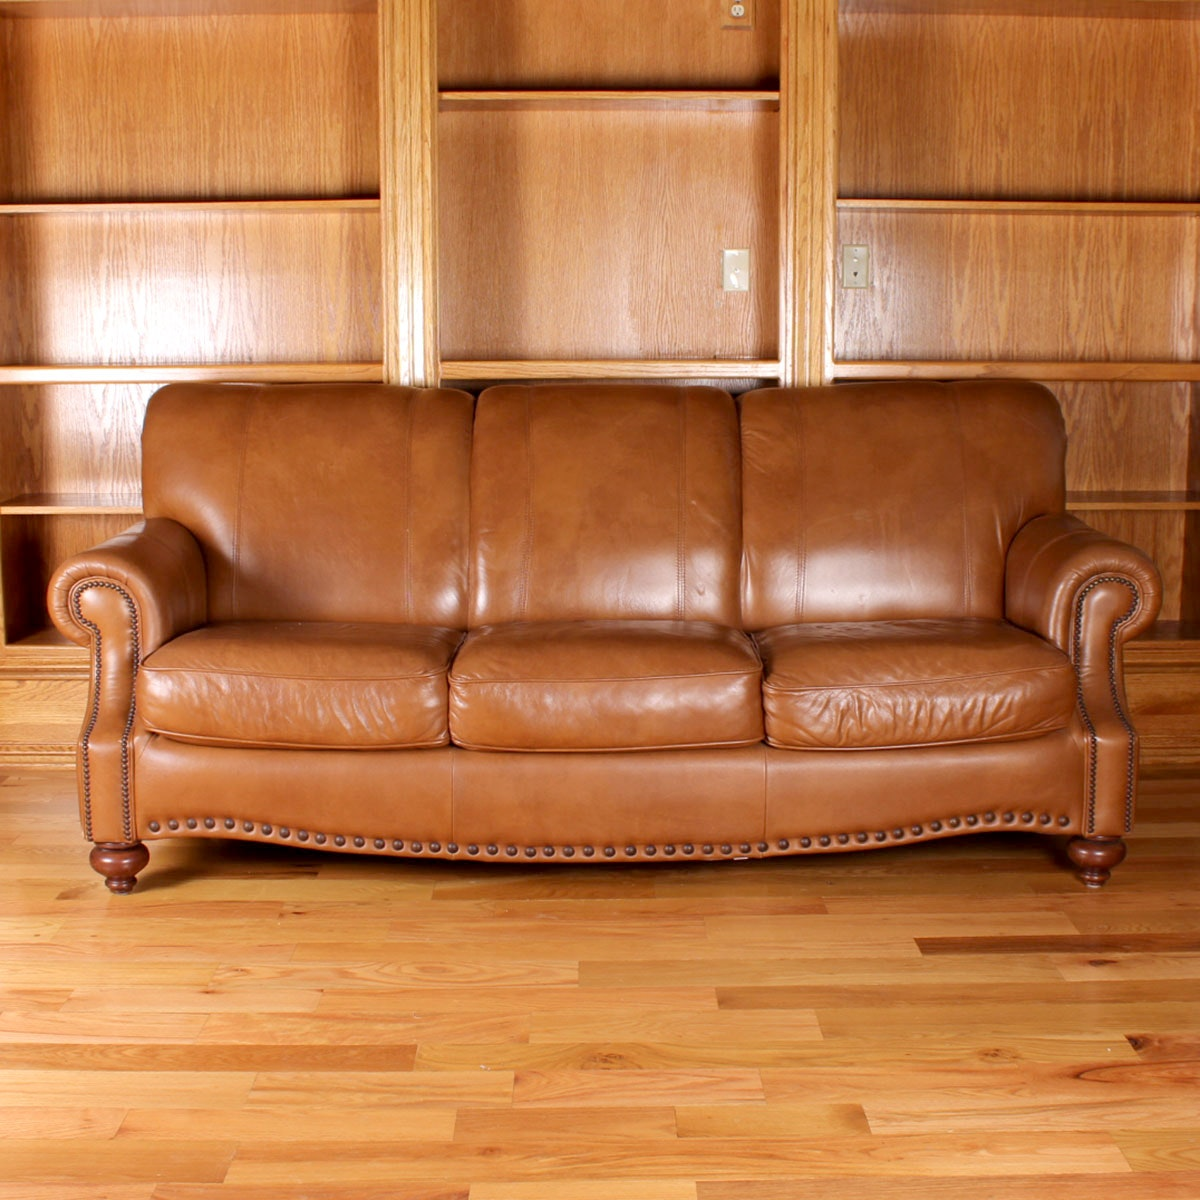 Light Tan Leather Couch: Light Brown Plush Leather Sofa : EBTH